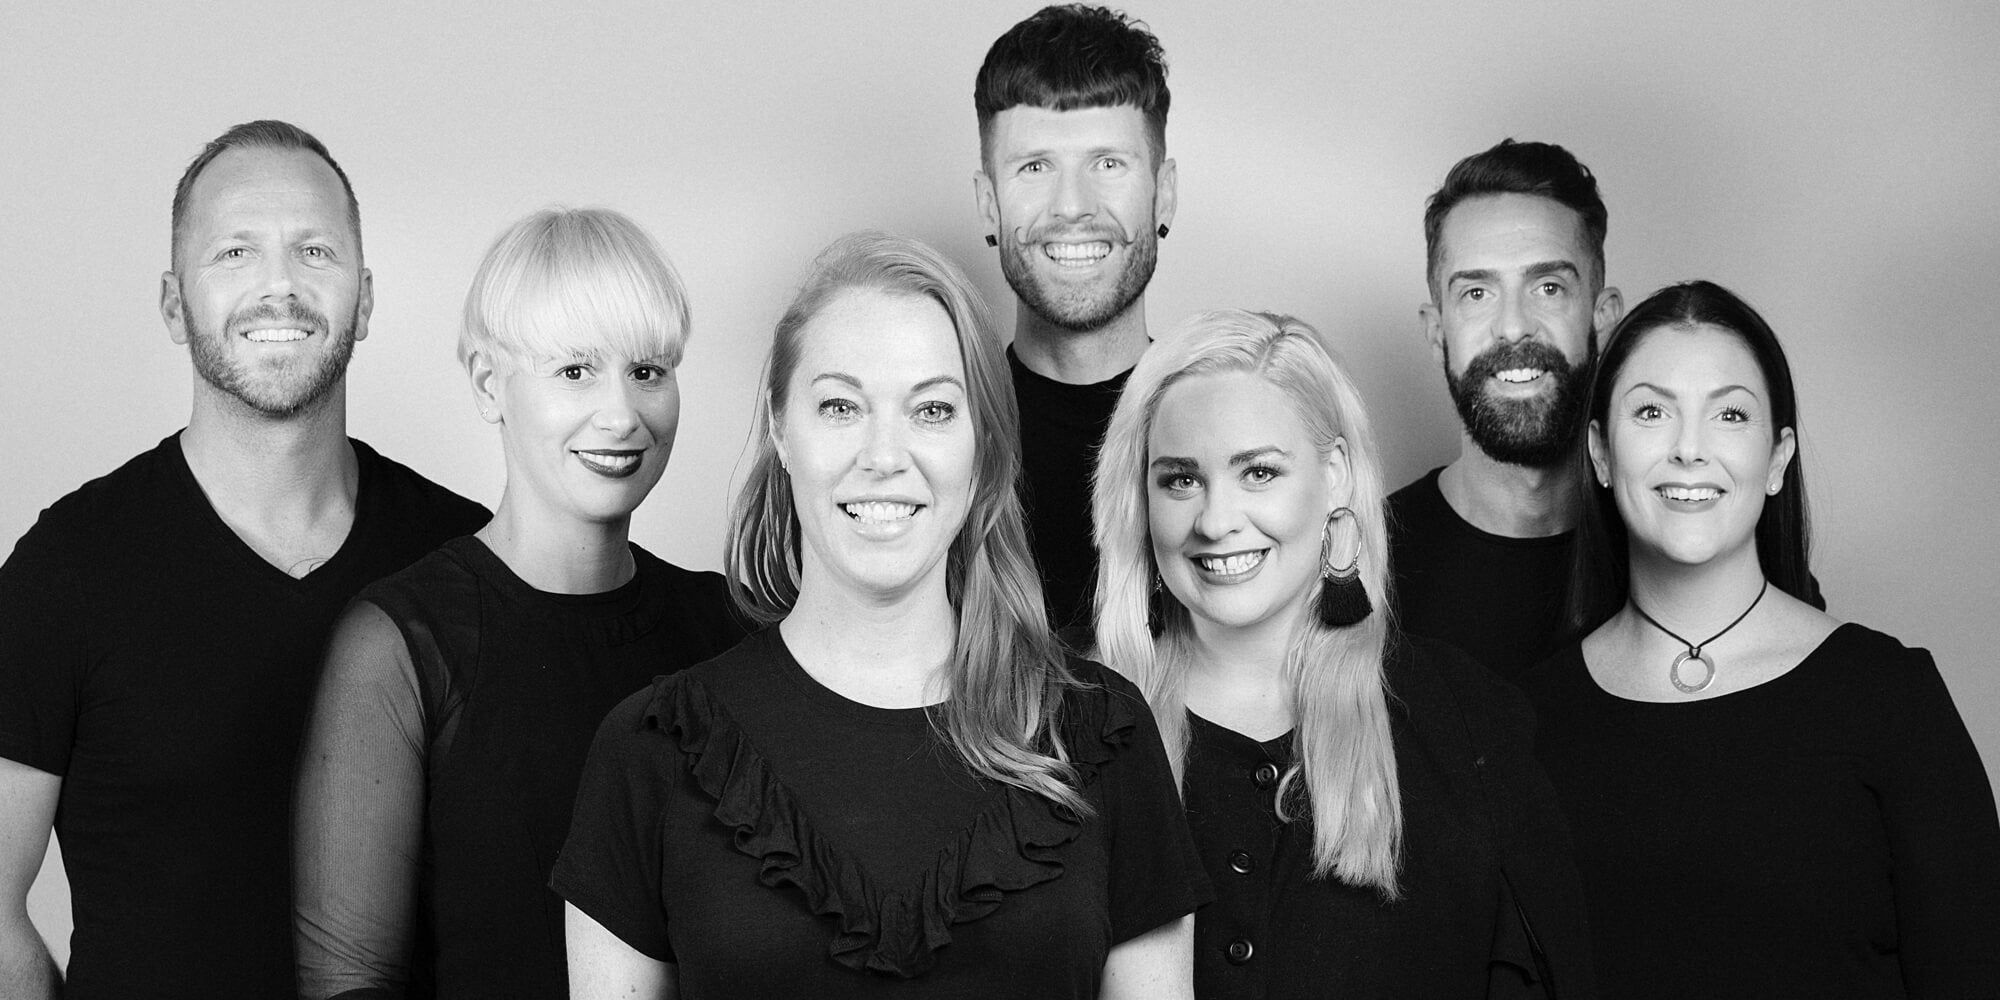 Carlton Hair Creative Team